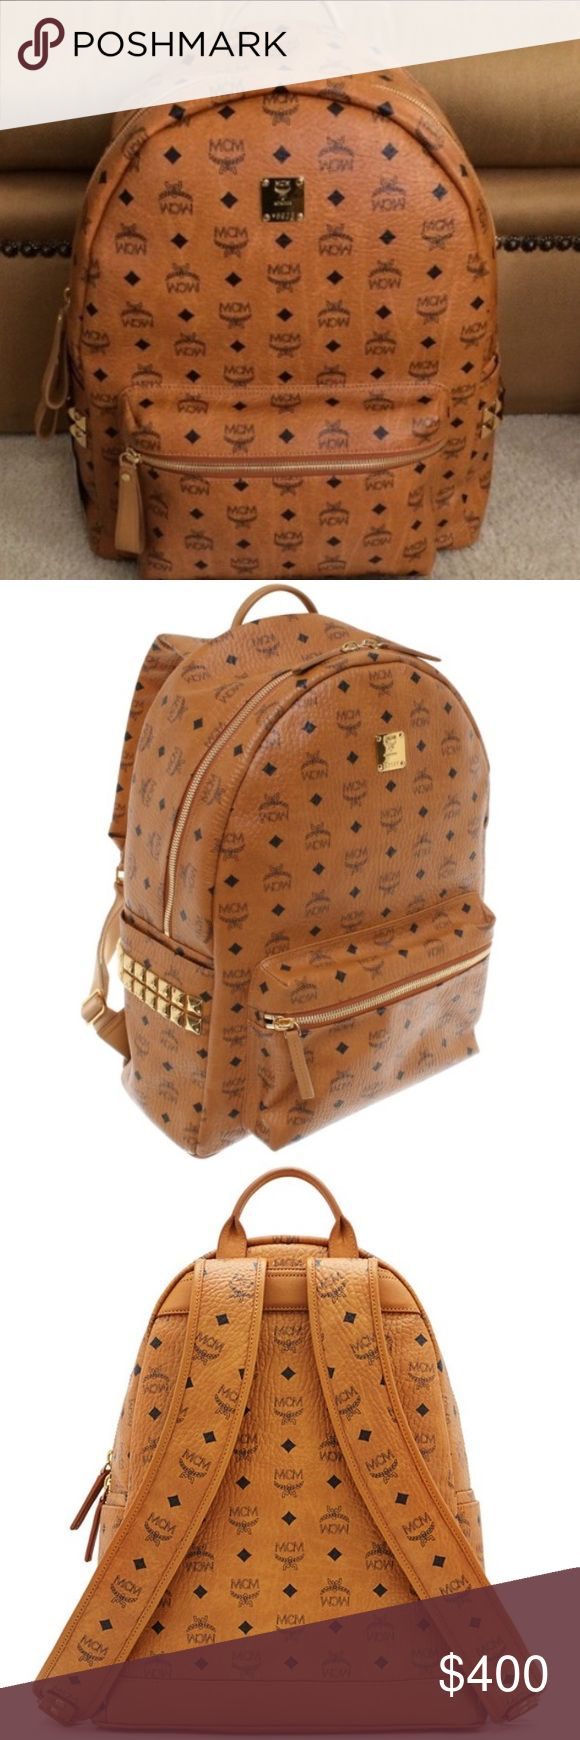 NEW MCM Backpack❤️ Brand new with tags!! Bags Backpacks